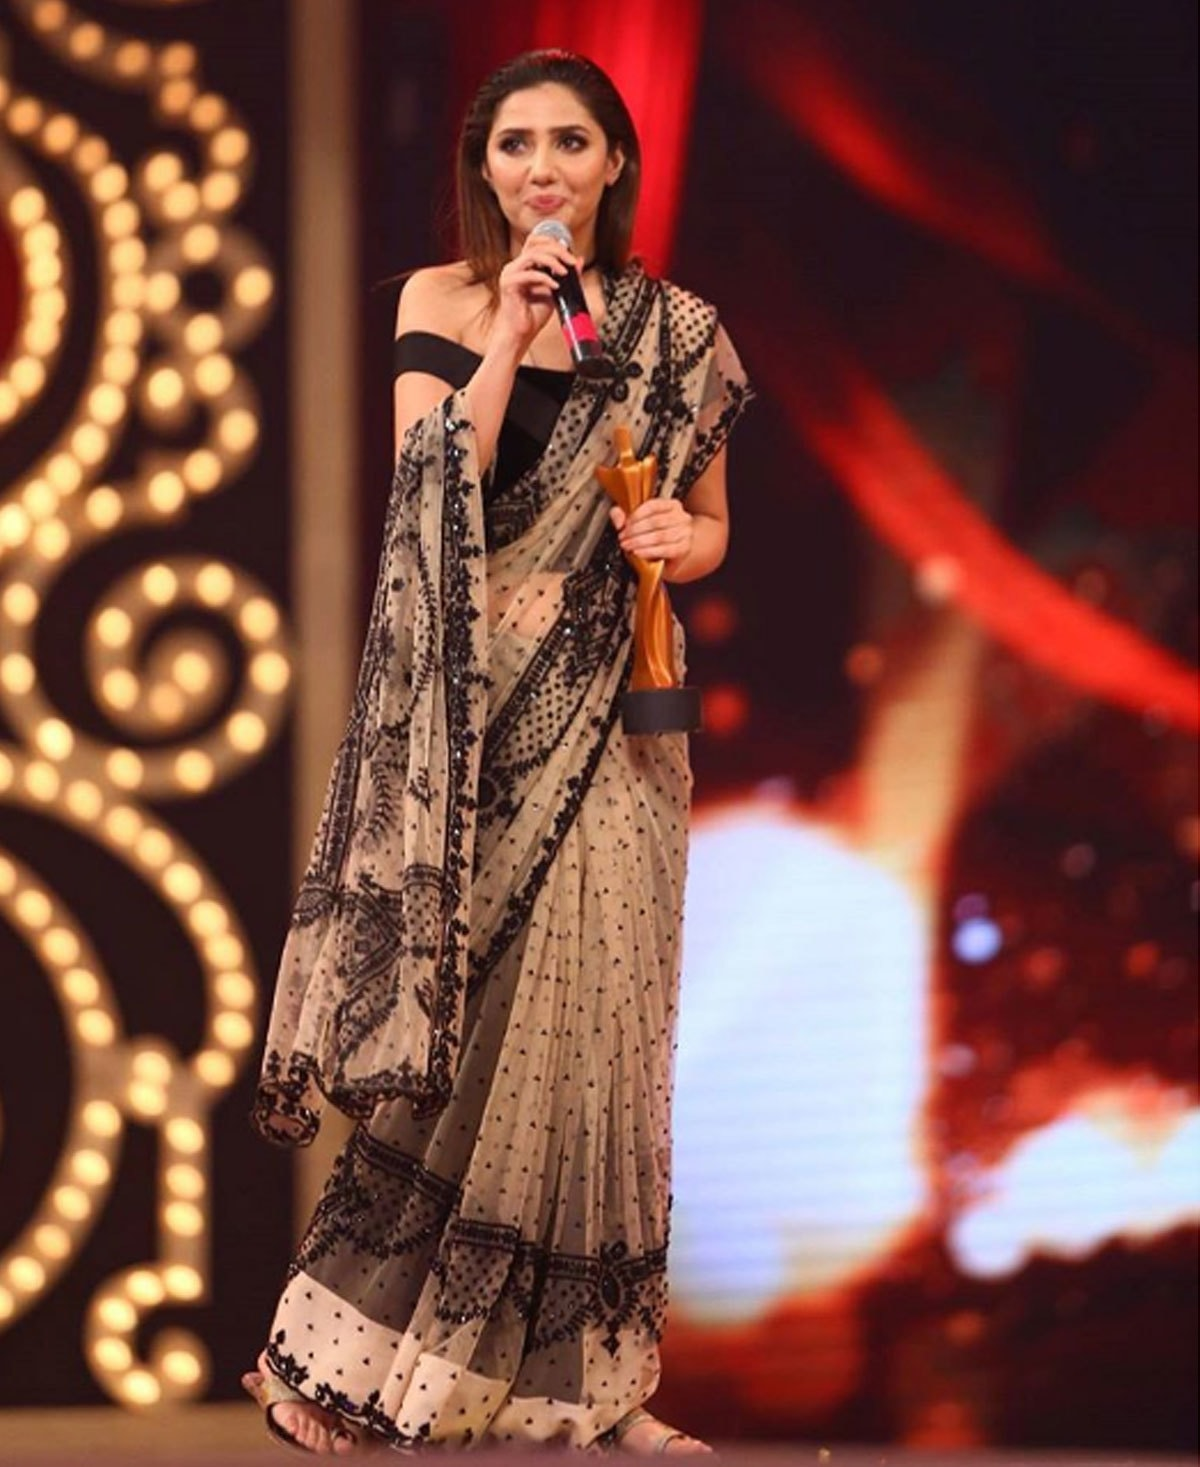 Mahira Khan taking a walk with her award on stage, 'cus she knows she owns it. Photo: Instagram